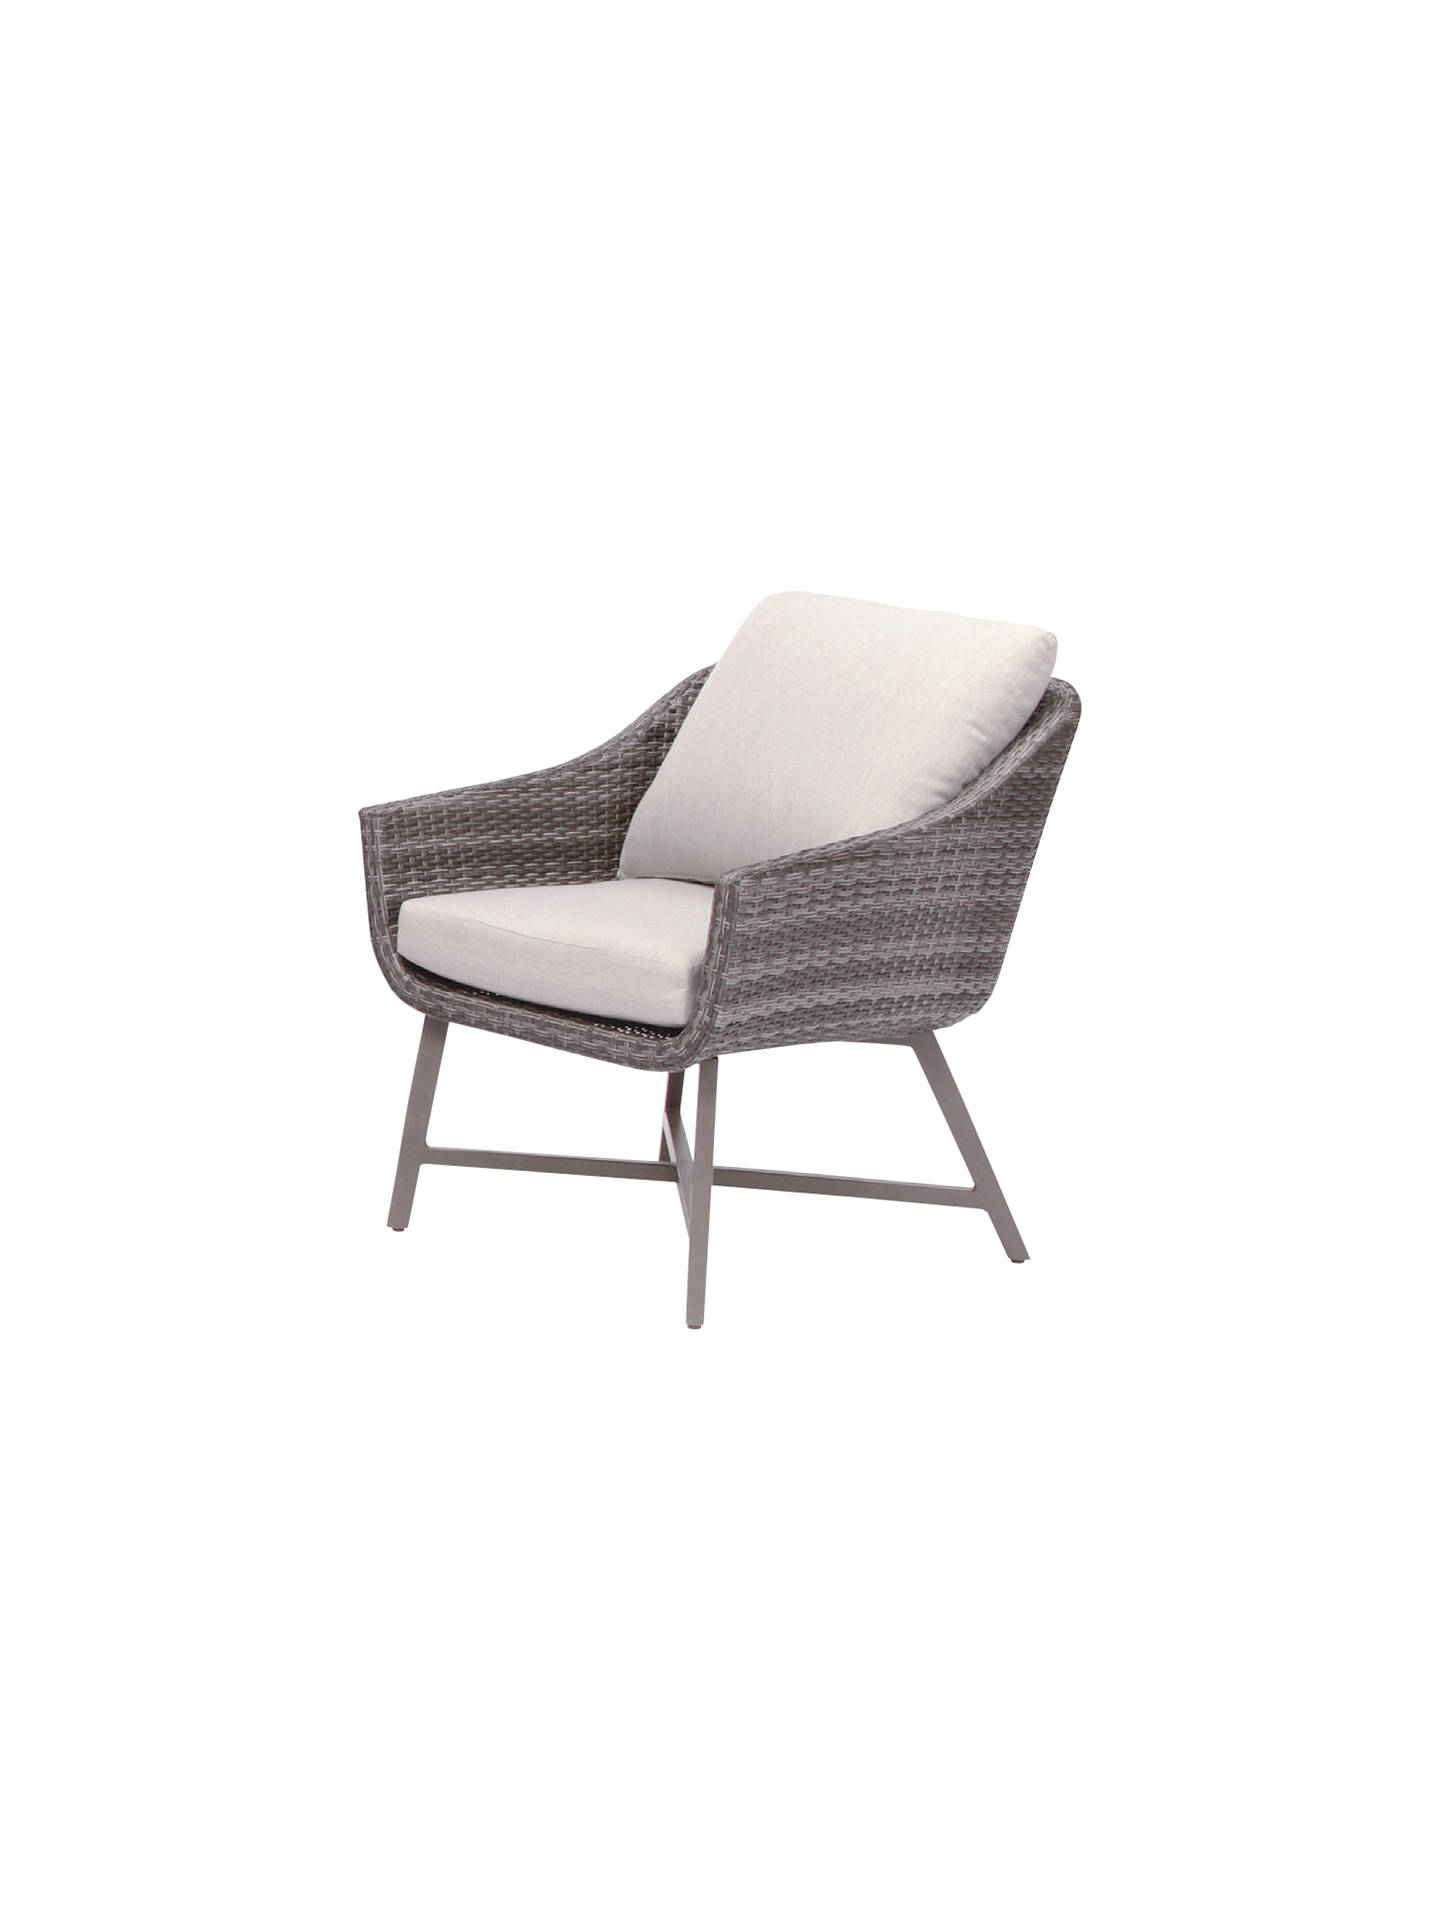 BuyKETTLER LaMode Lounge Chair with Cushion Online at johnlewis.com